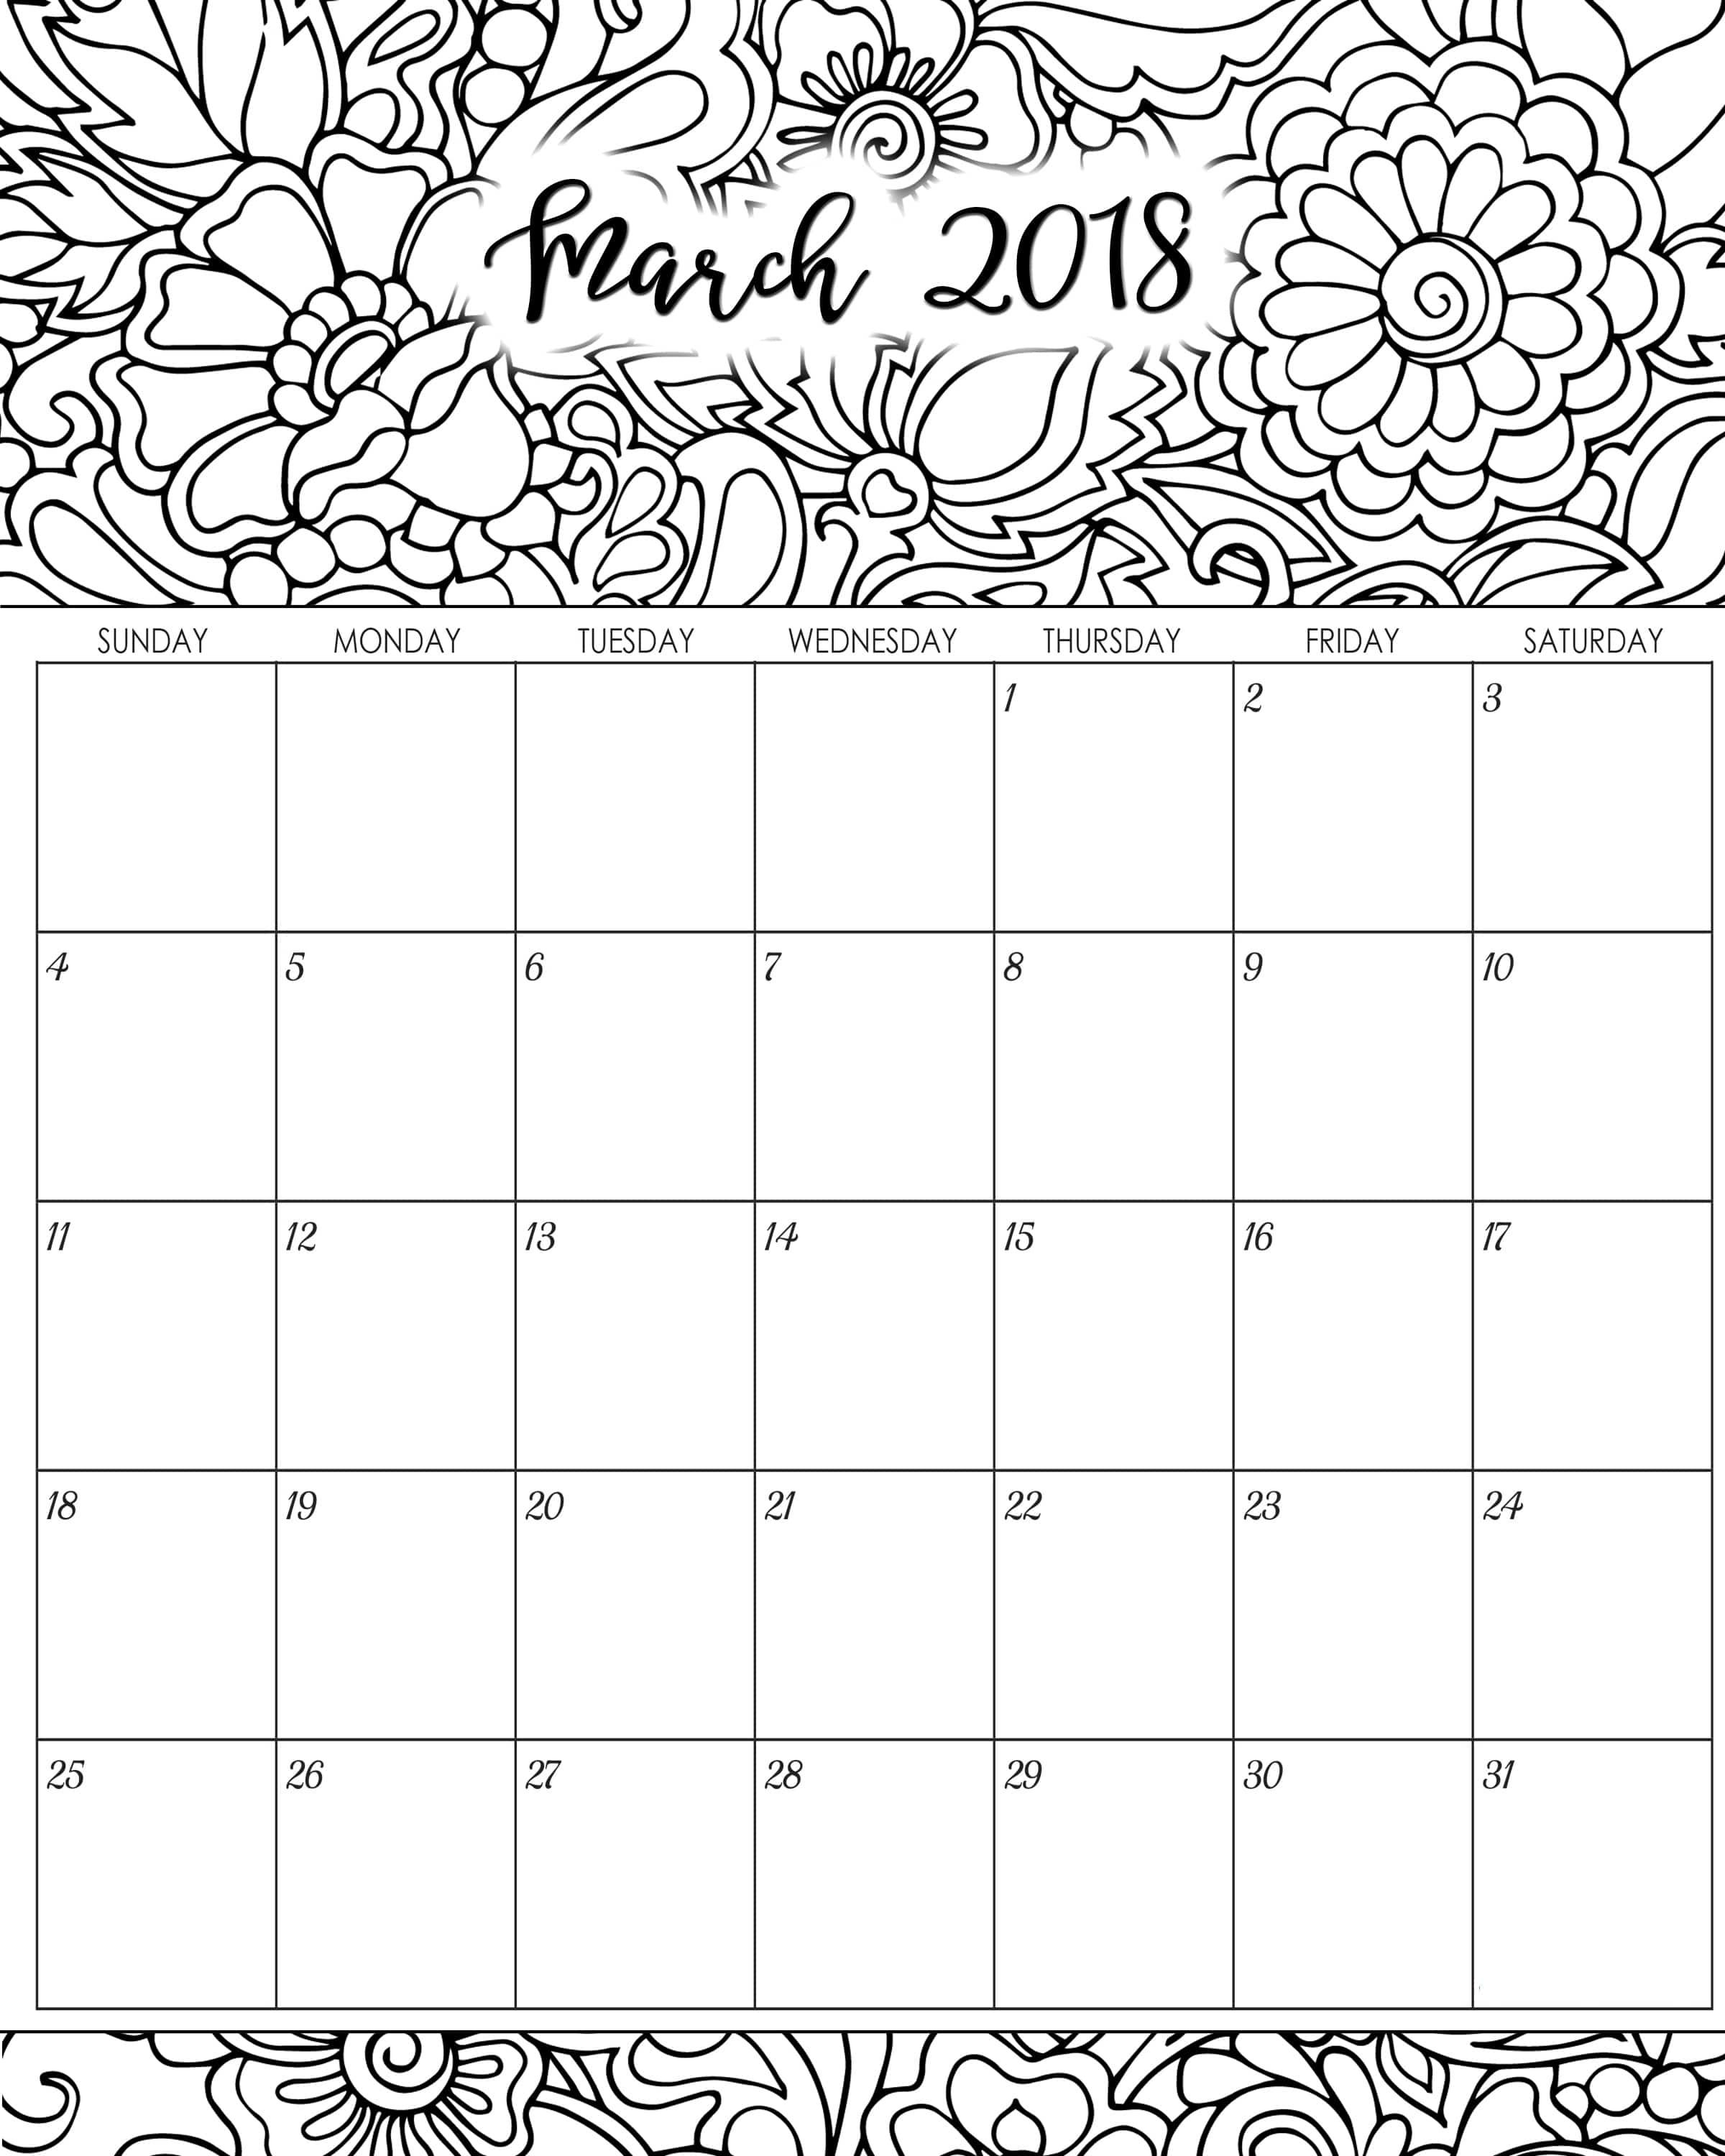 March Coloring Pages Pdf : Calendar march printable pdf word free download